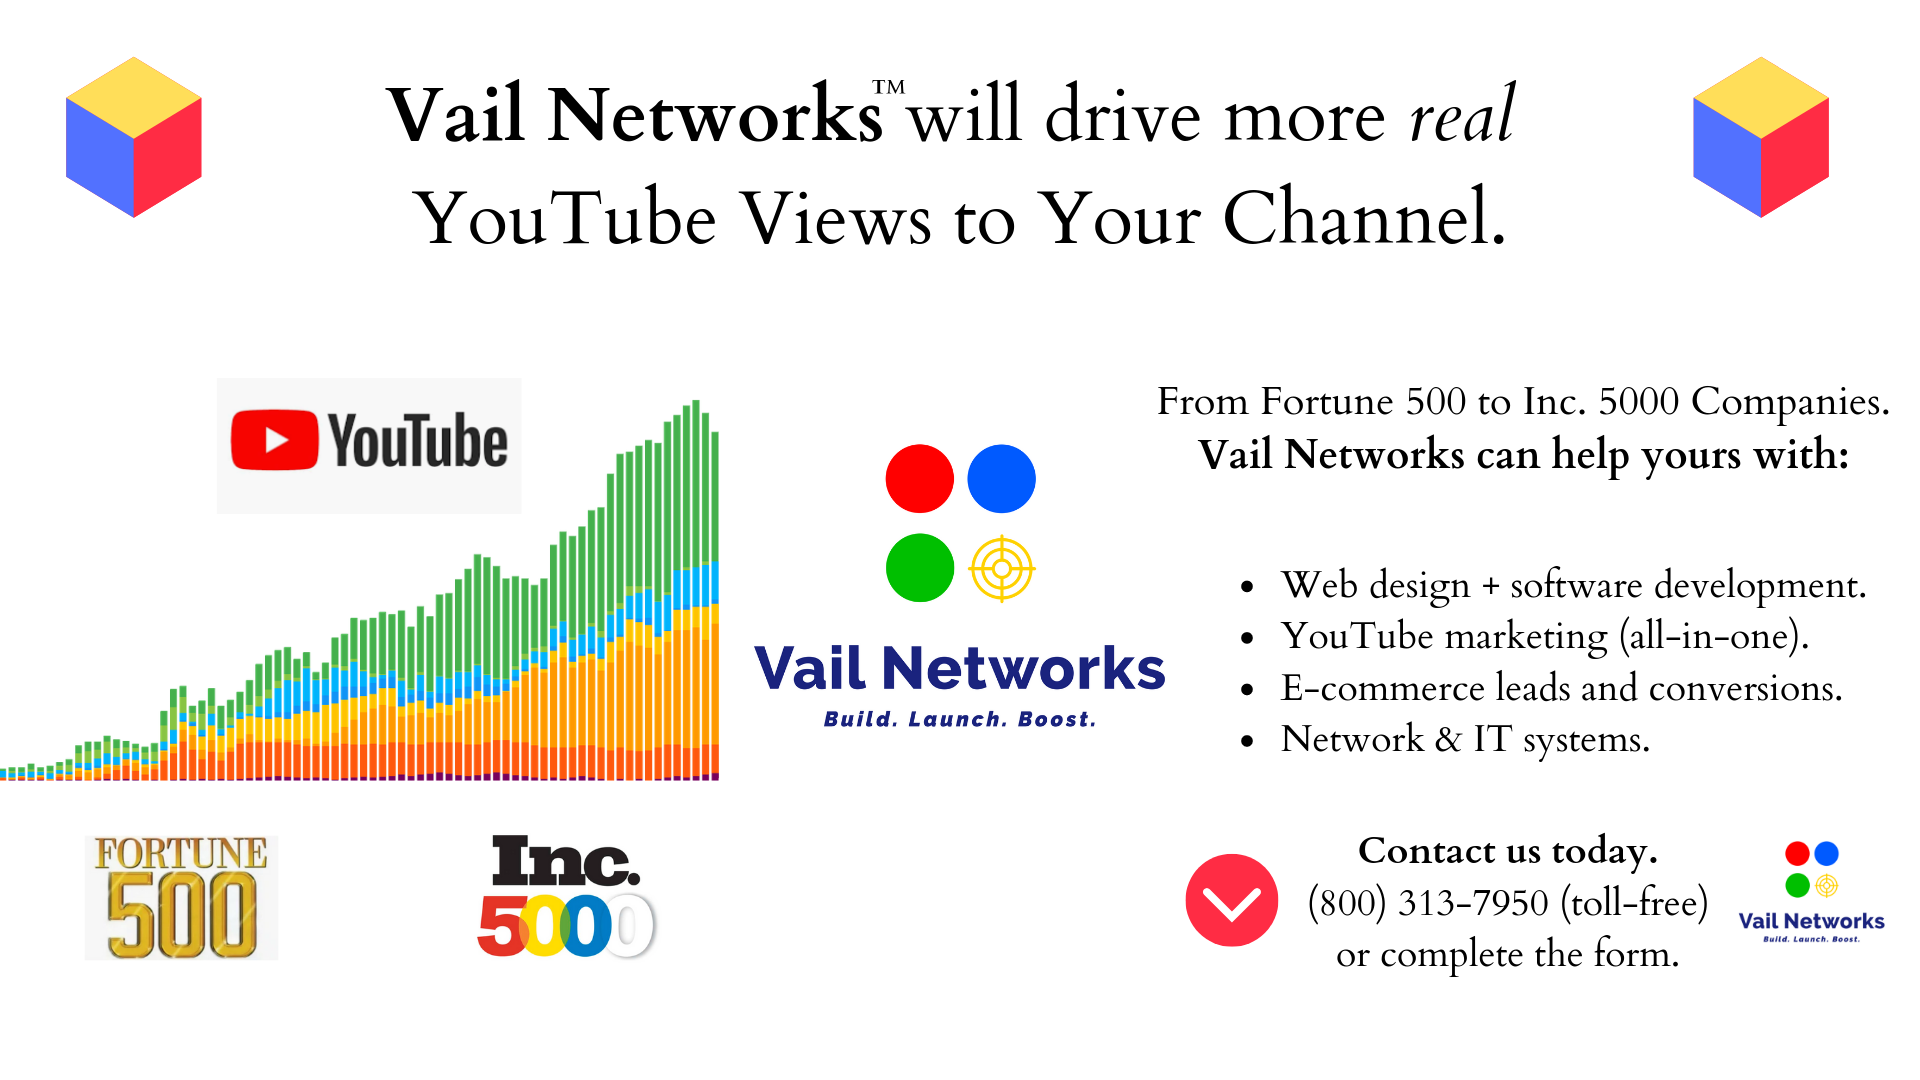 company to help with youtube marketing and advertising campaigns: vailnetworks.com